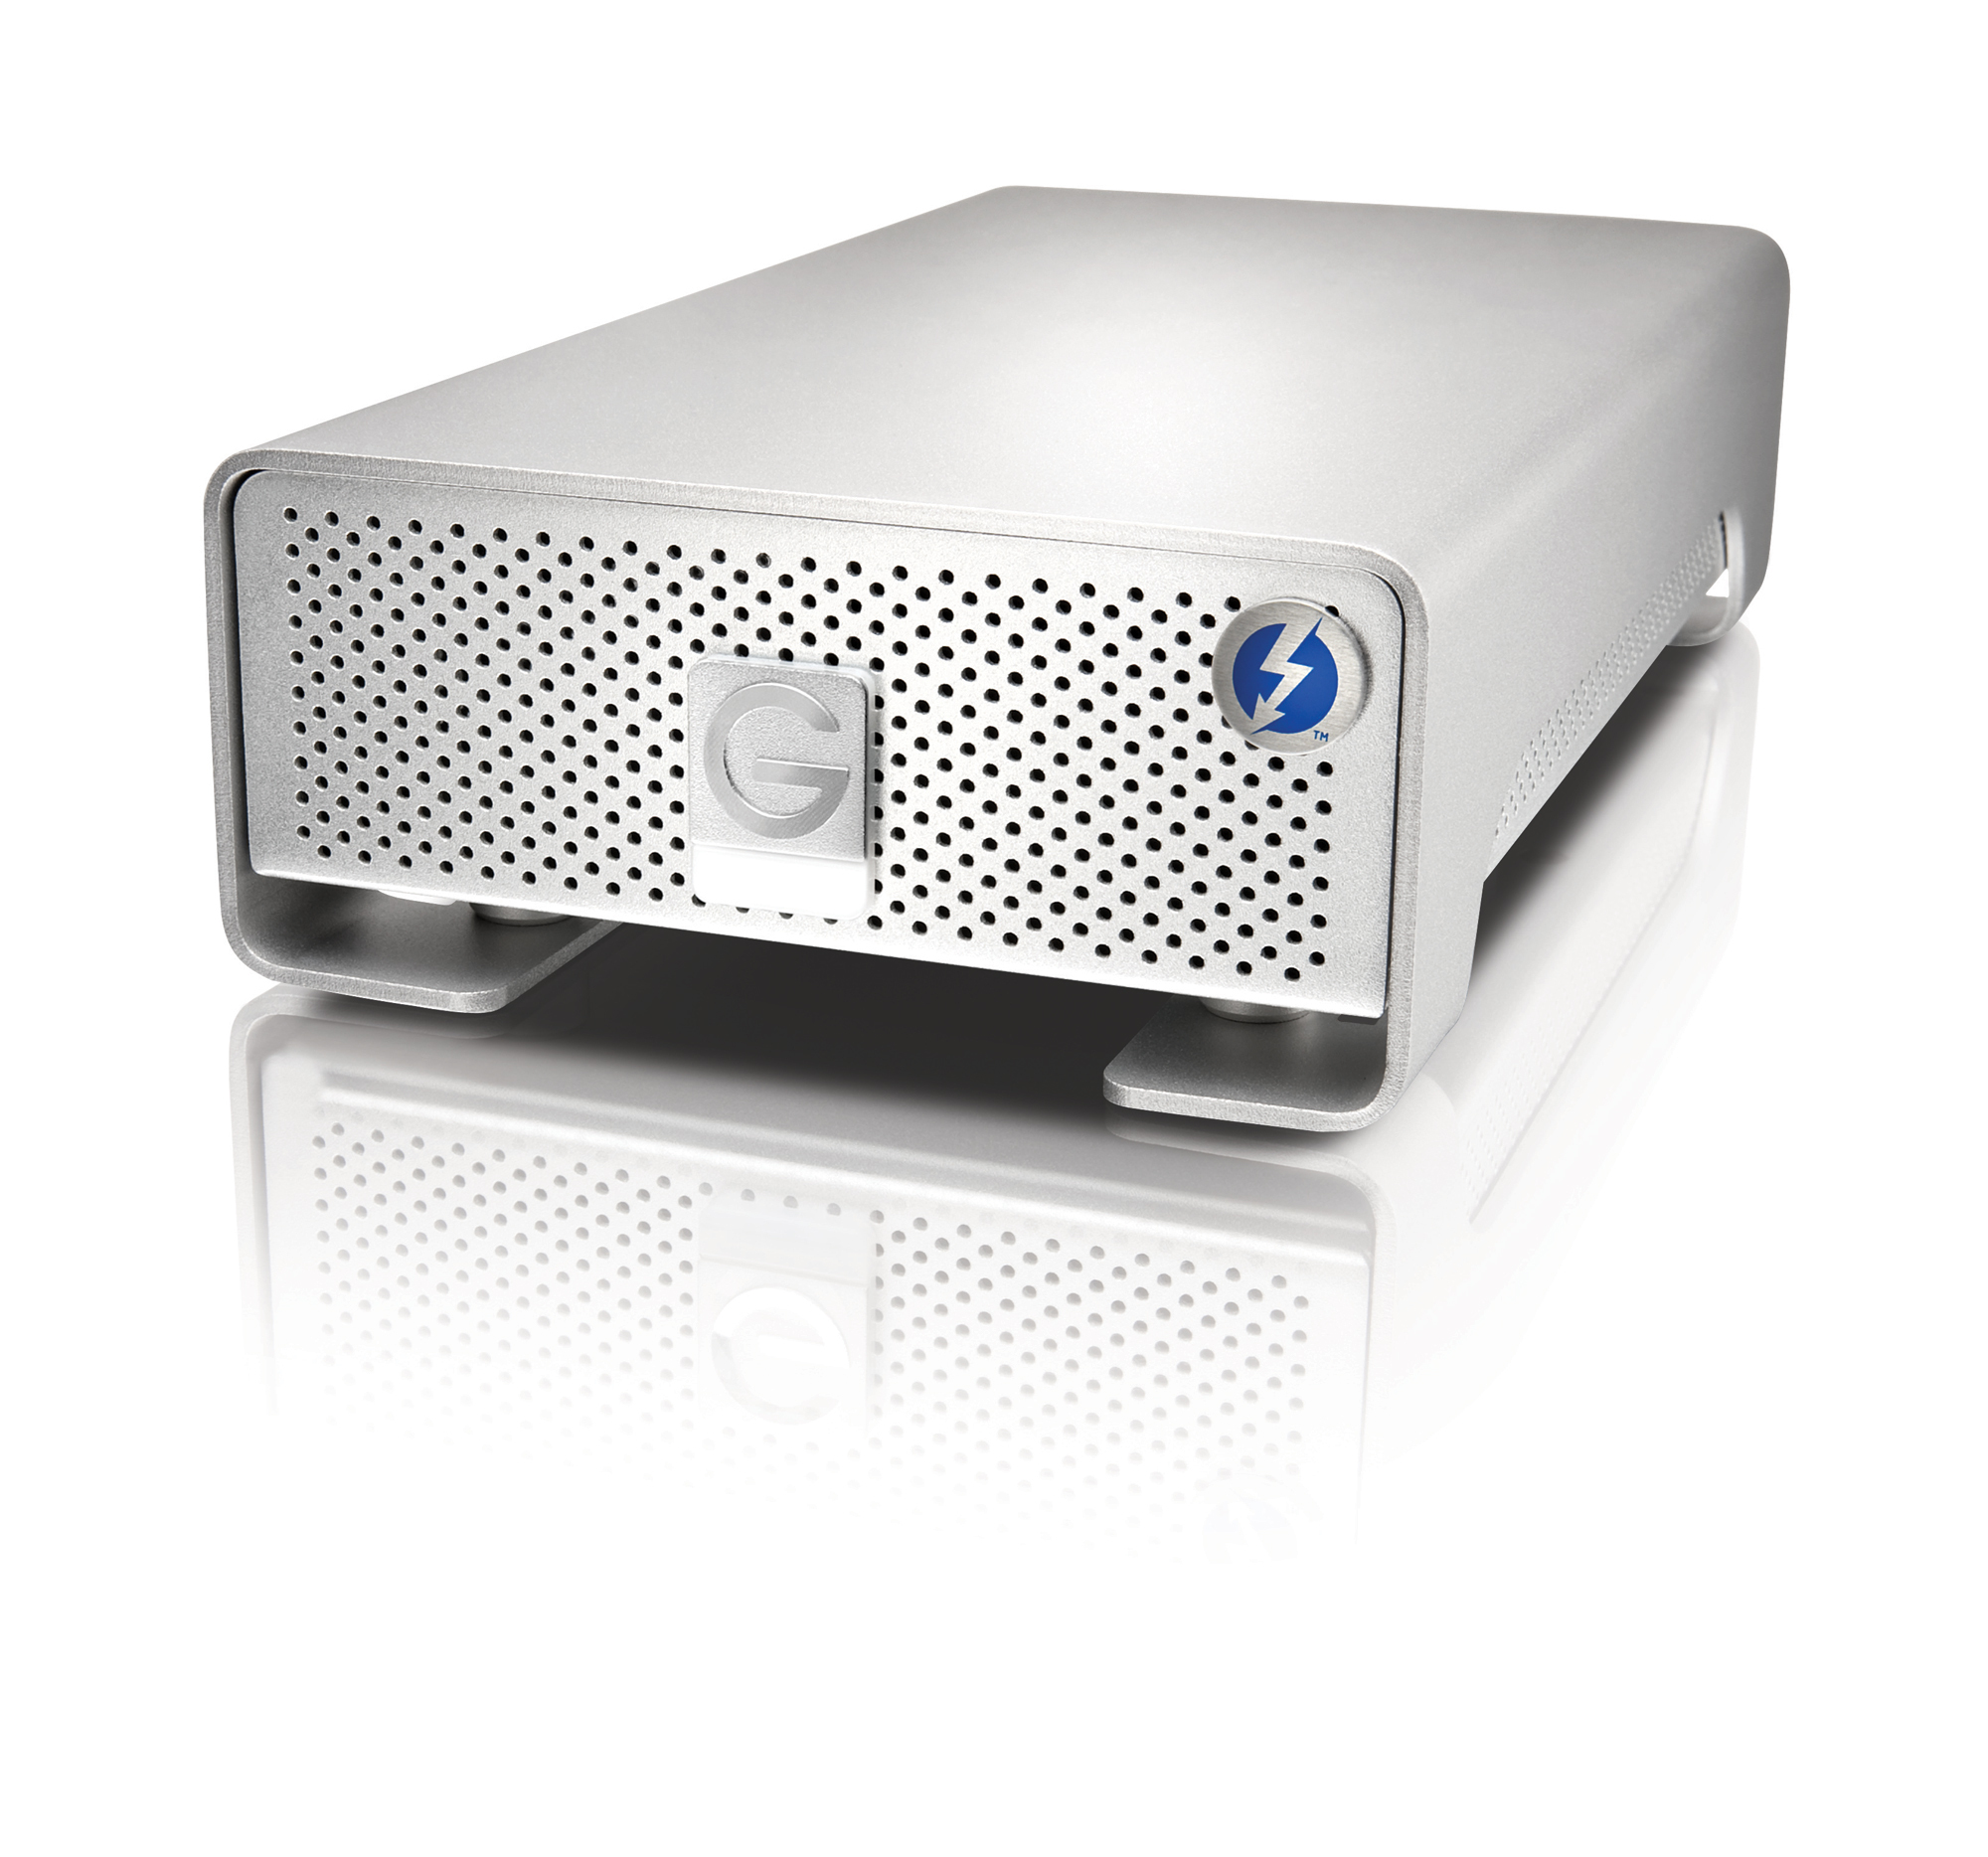 G-DRIVE with Thunderbolt 6TB